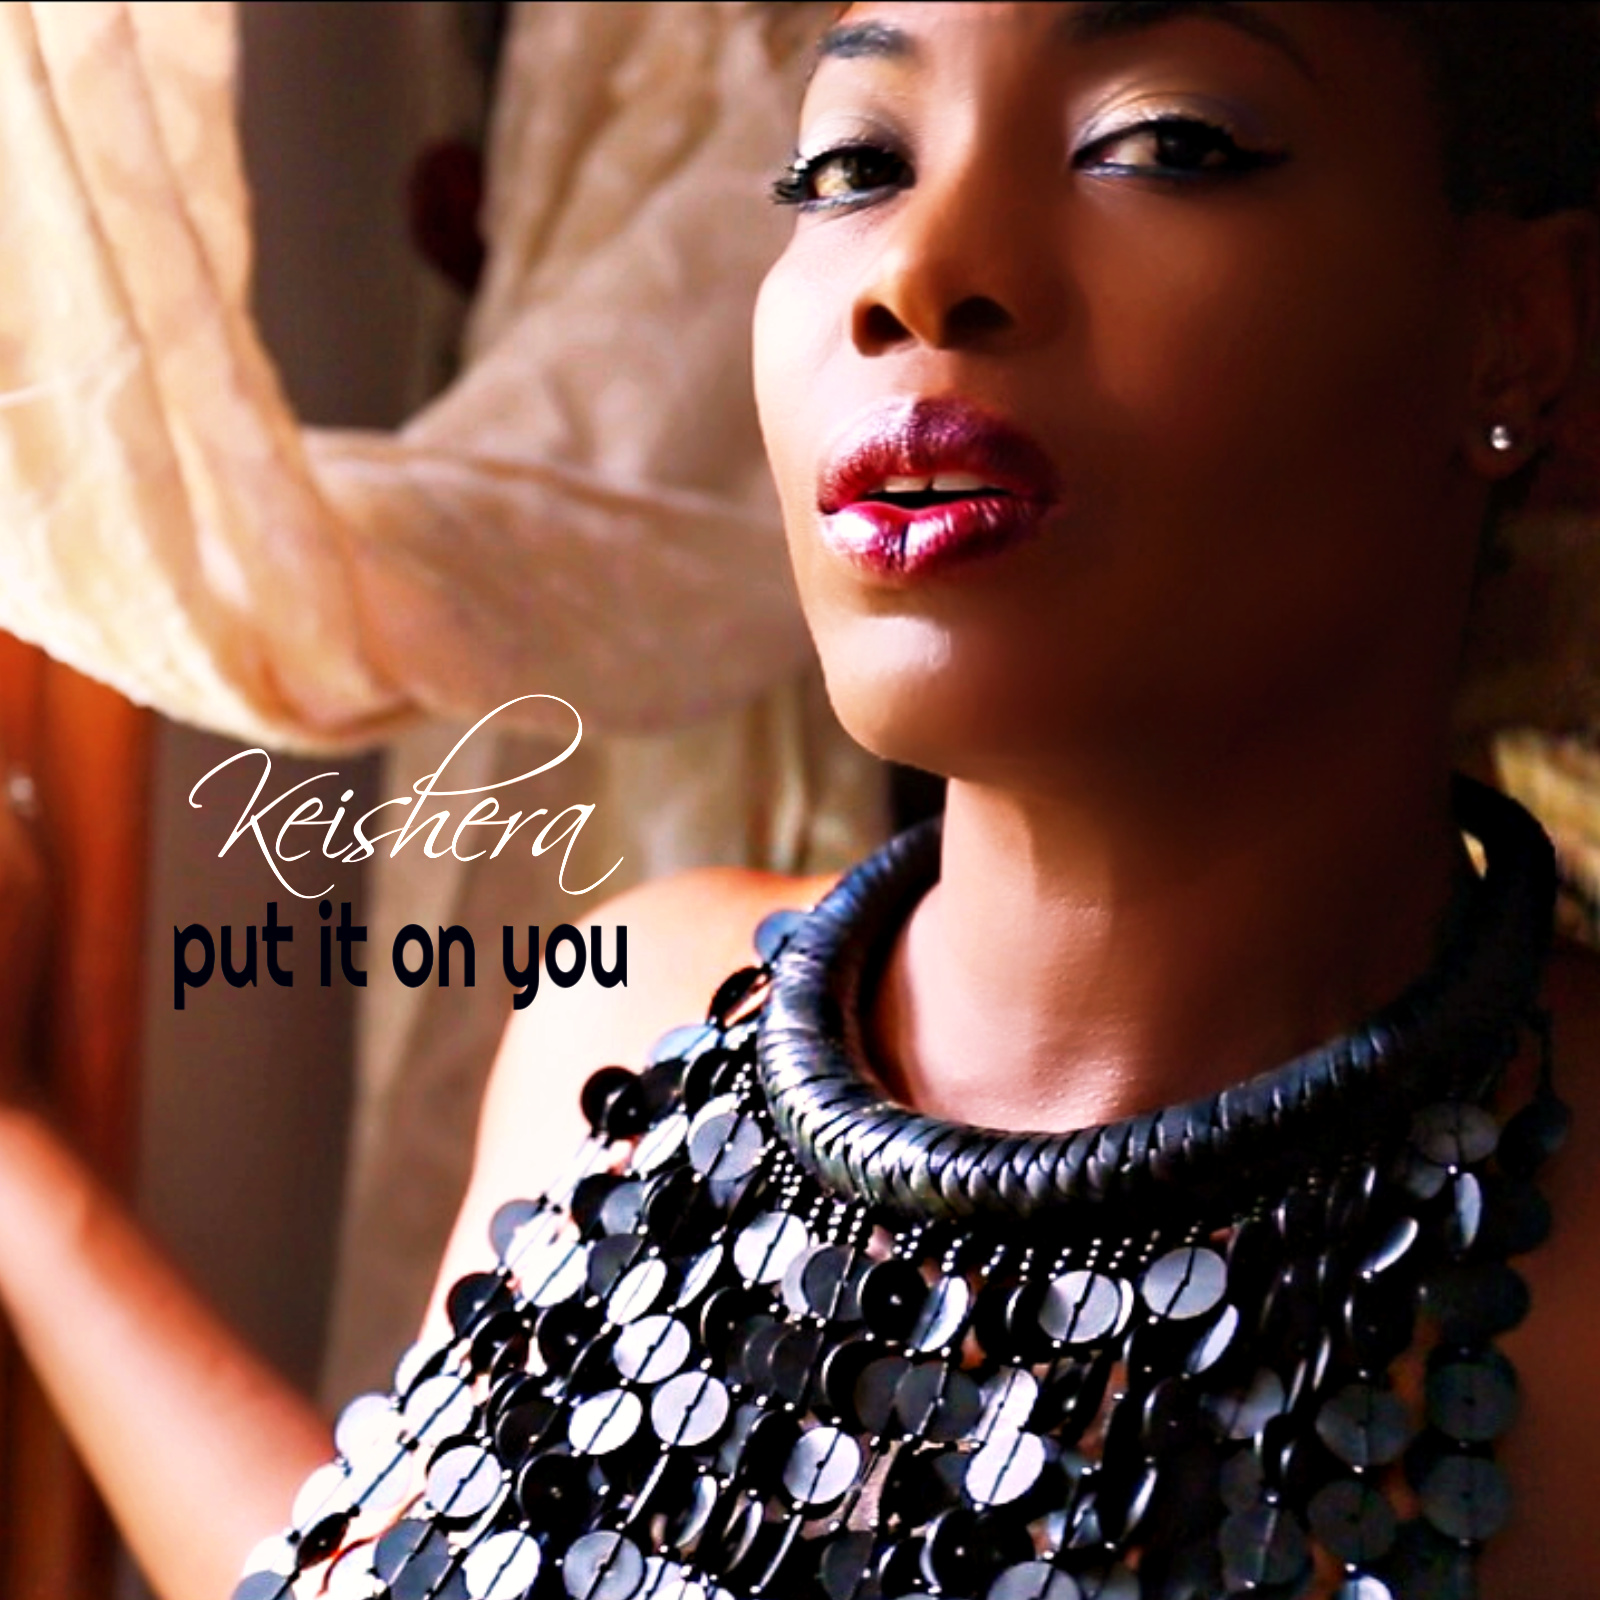 Keishera - Put It On You